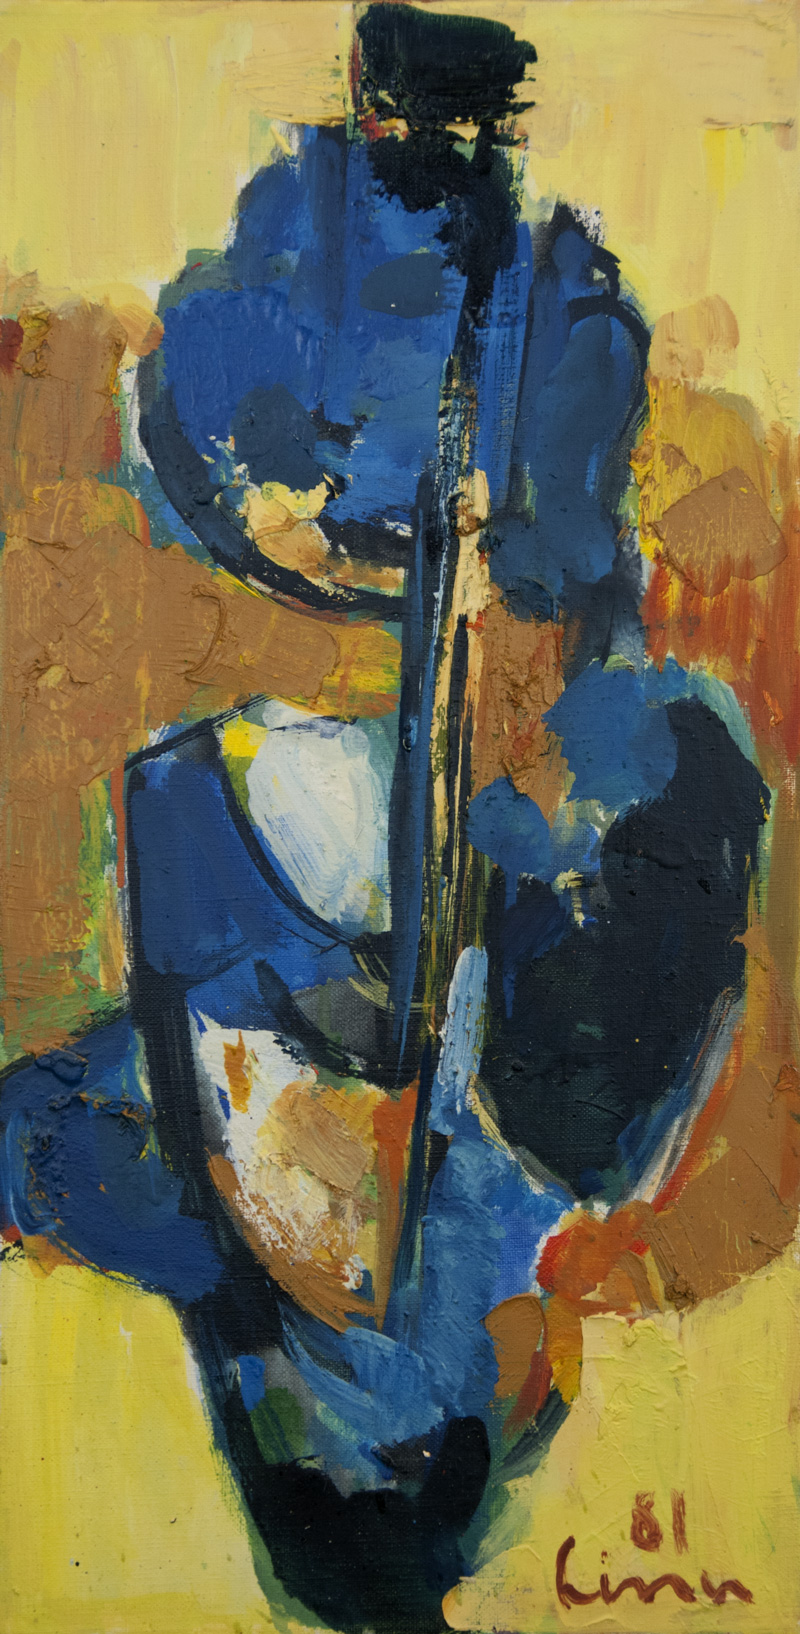 Composition ocher-blue-black